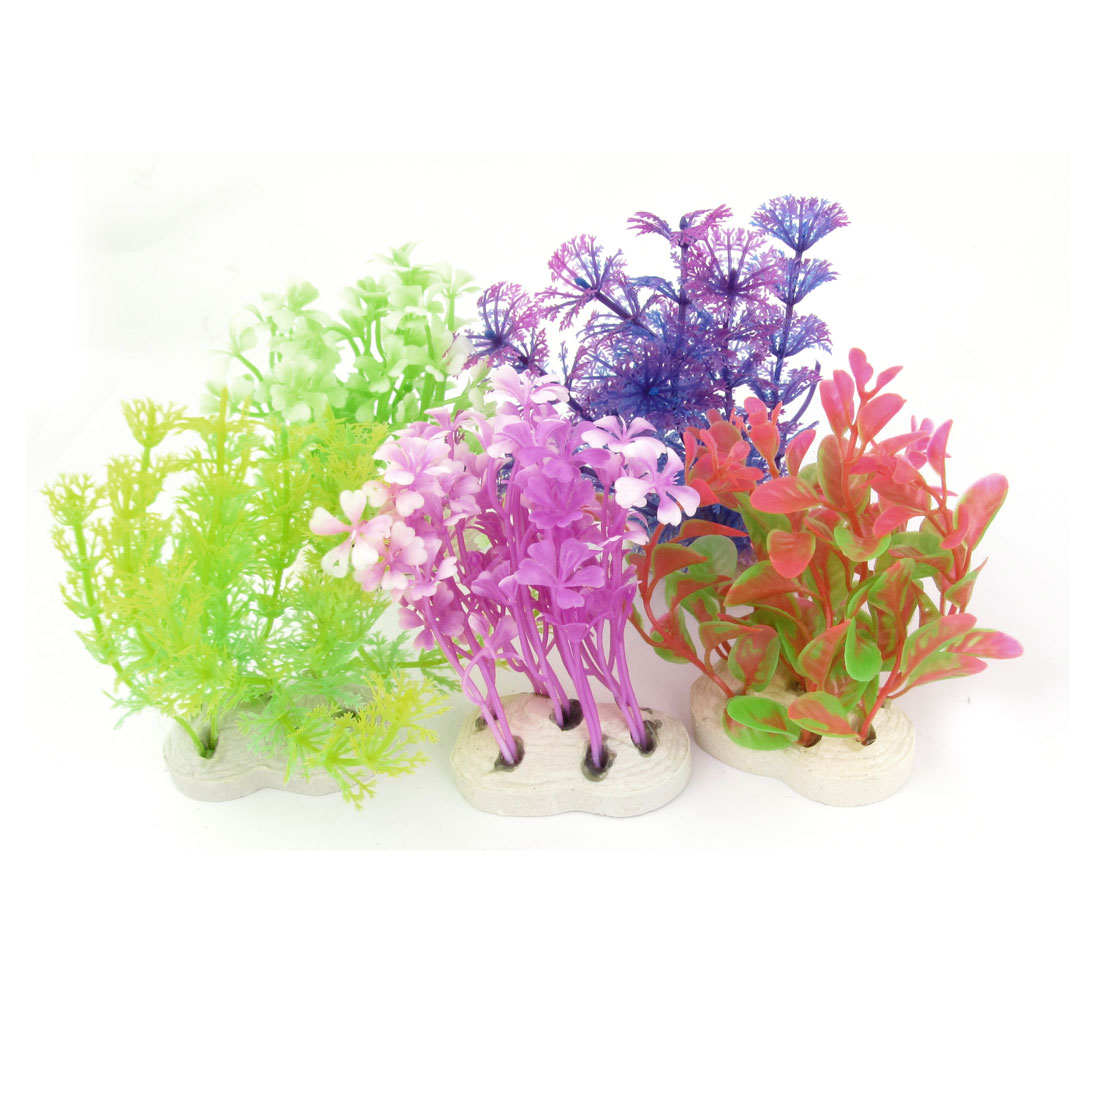 "Aquarium Ornament Ceramic Base Assorted Color Plastic Plant 3.9"" High 5pcs"